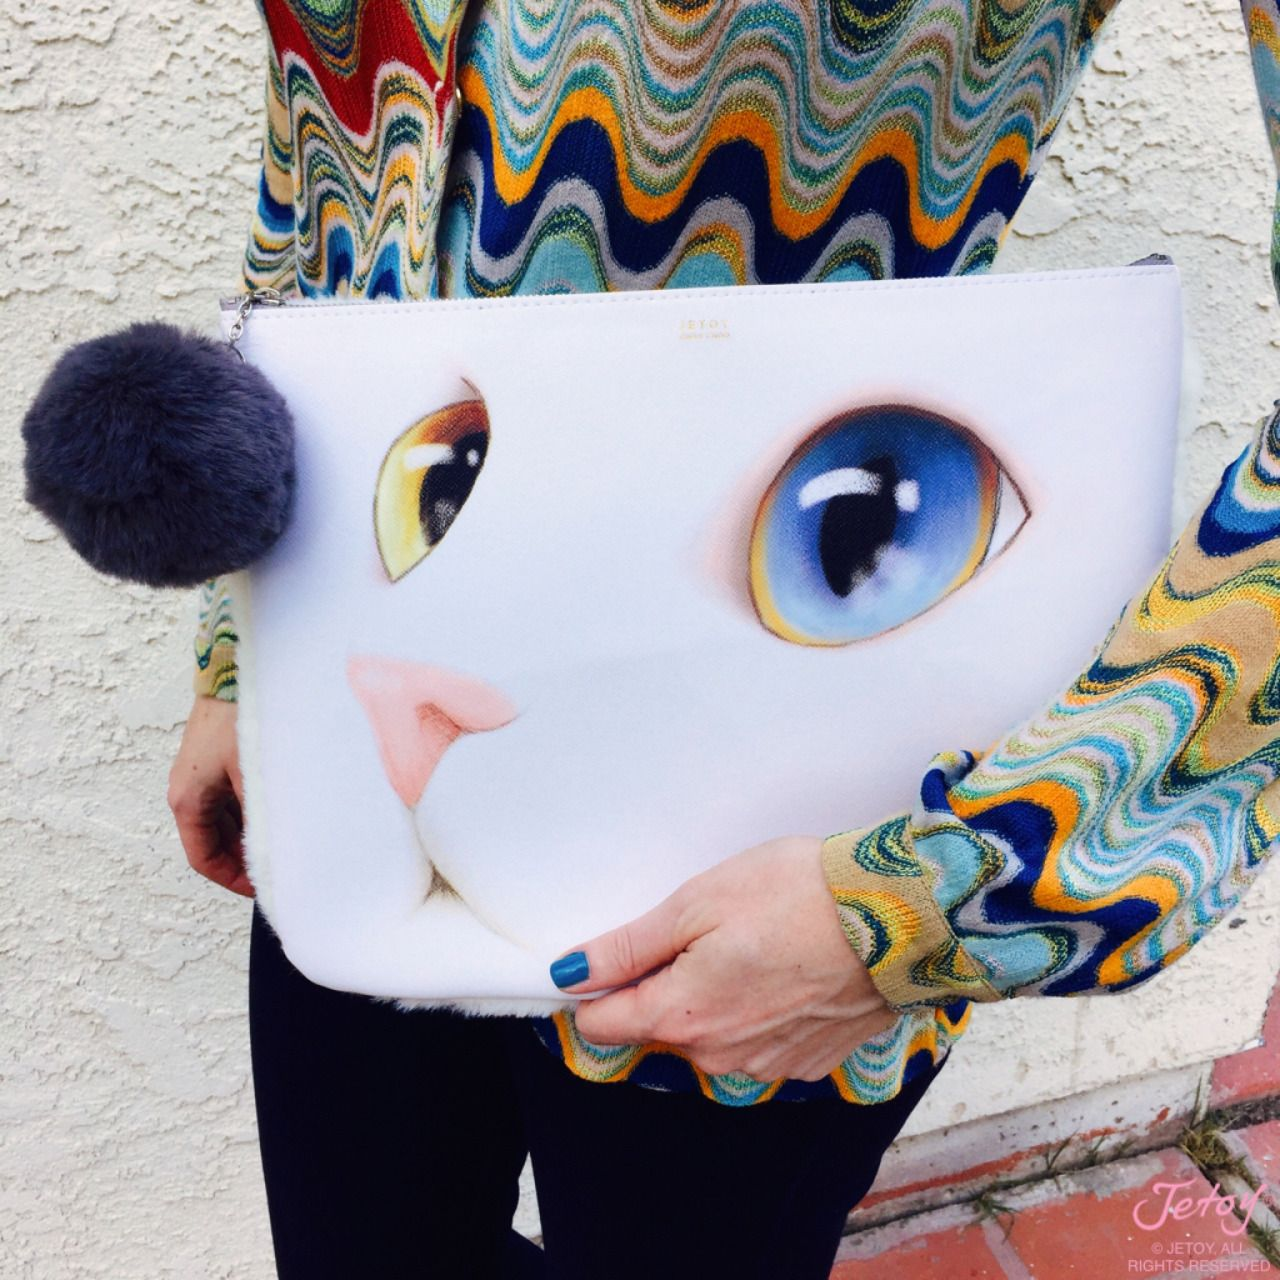 New furriends: our limited edition Cat Face Clutch has a faux fur back and pom pom! This Valentine's Day >